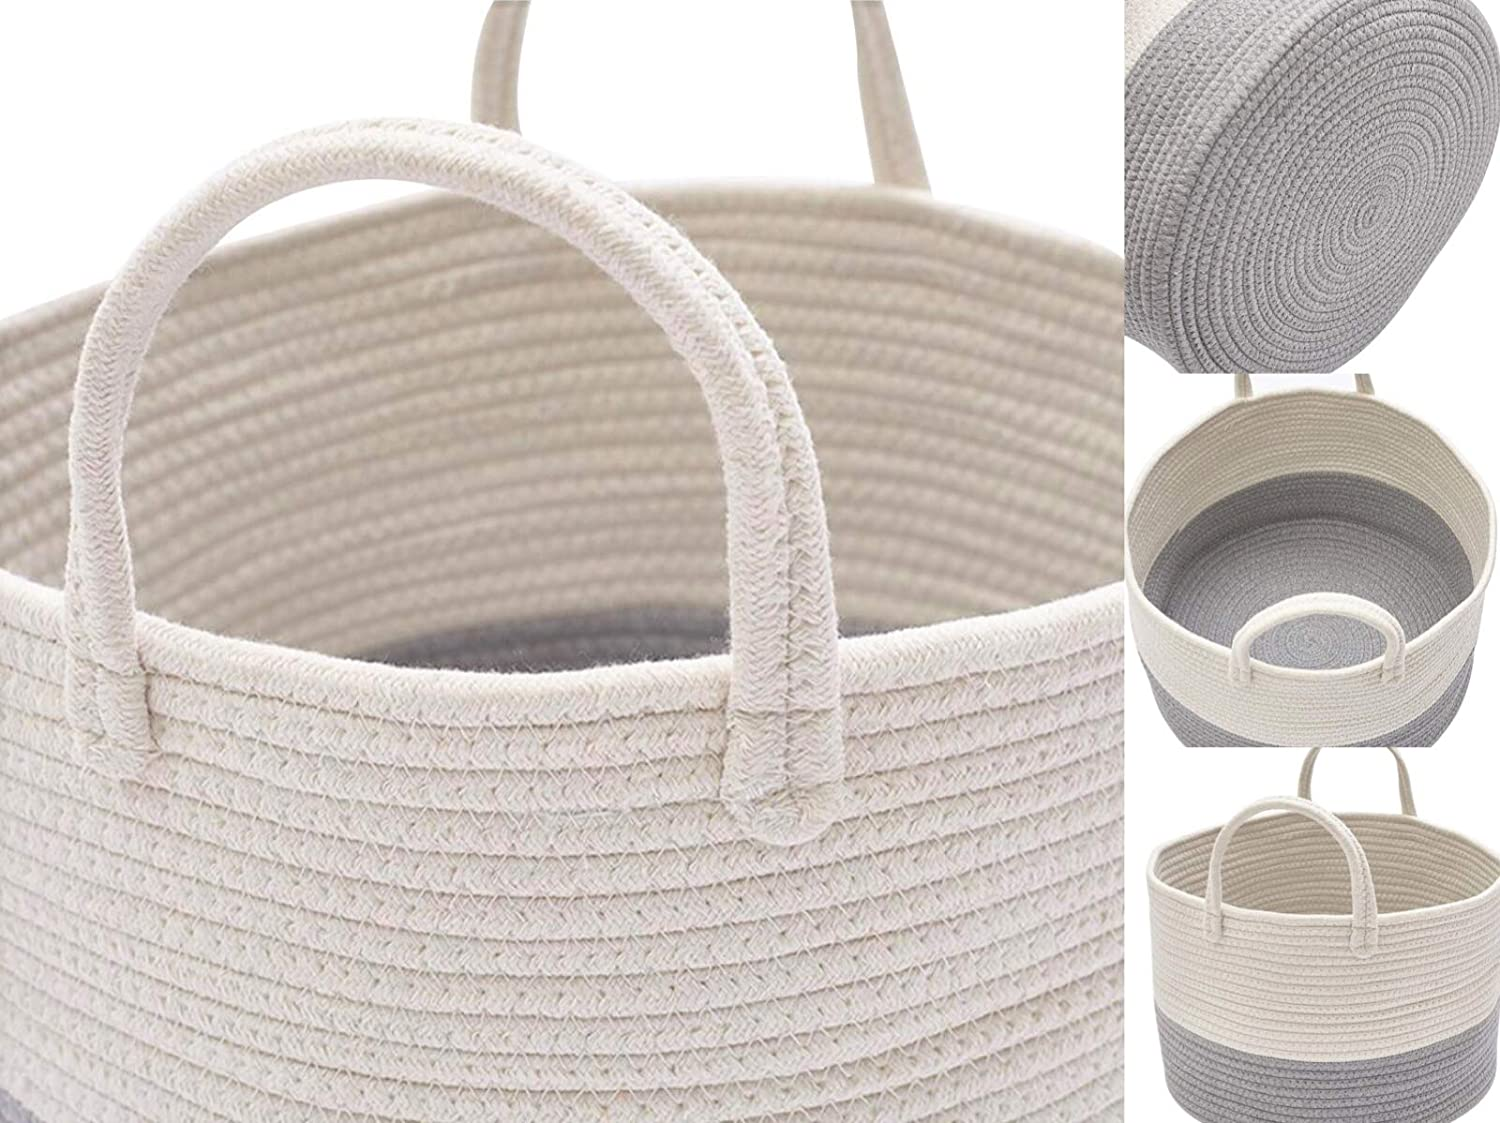 x 13.8 21.7 D H White, XXL DOKEHOM DKA0624WBXL XX-Large Storage Baskets - Cotton Rope Basket Woven Baby Laundry Basket with Handle for Diaper Toy Cute Neutral Home Decor